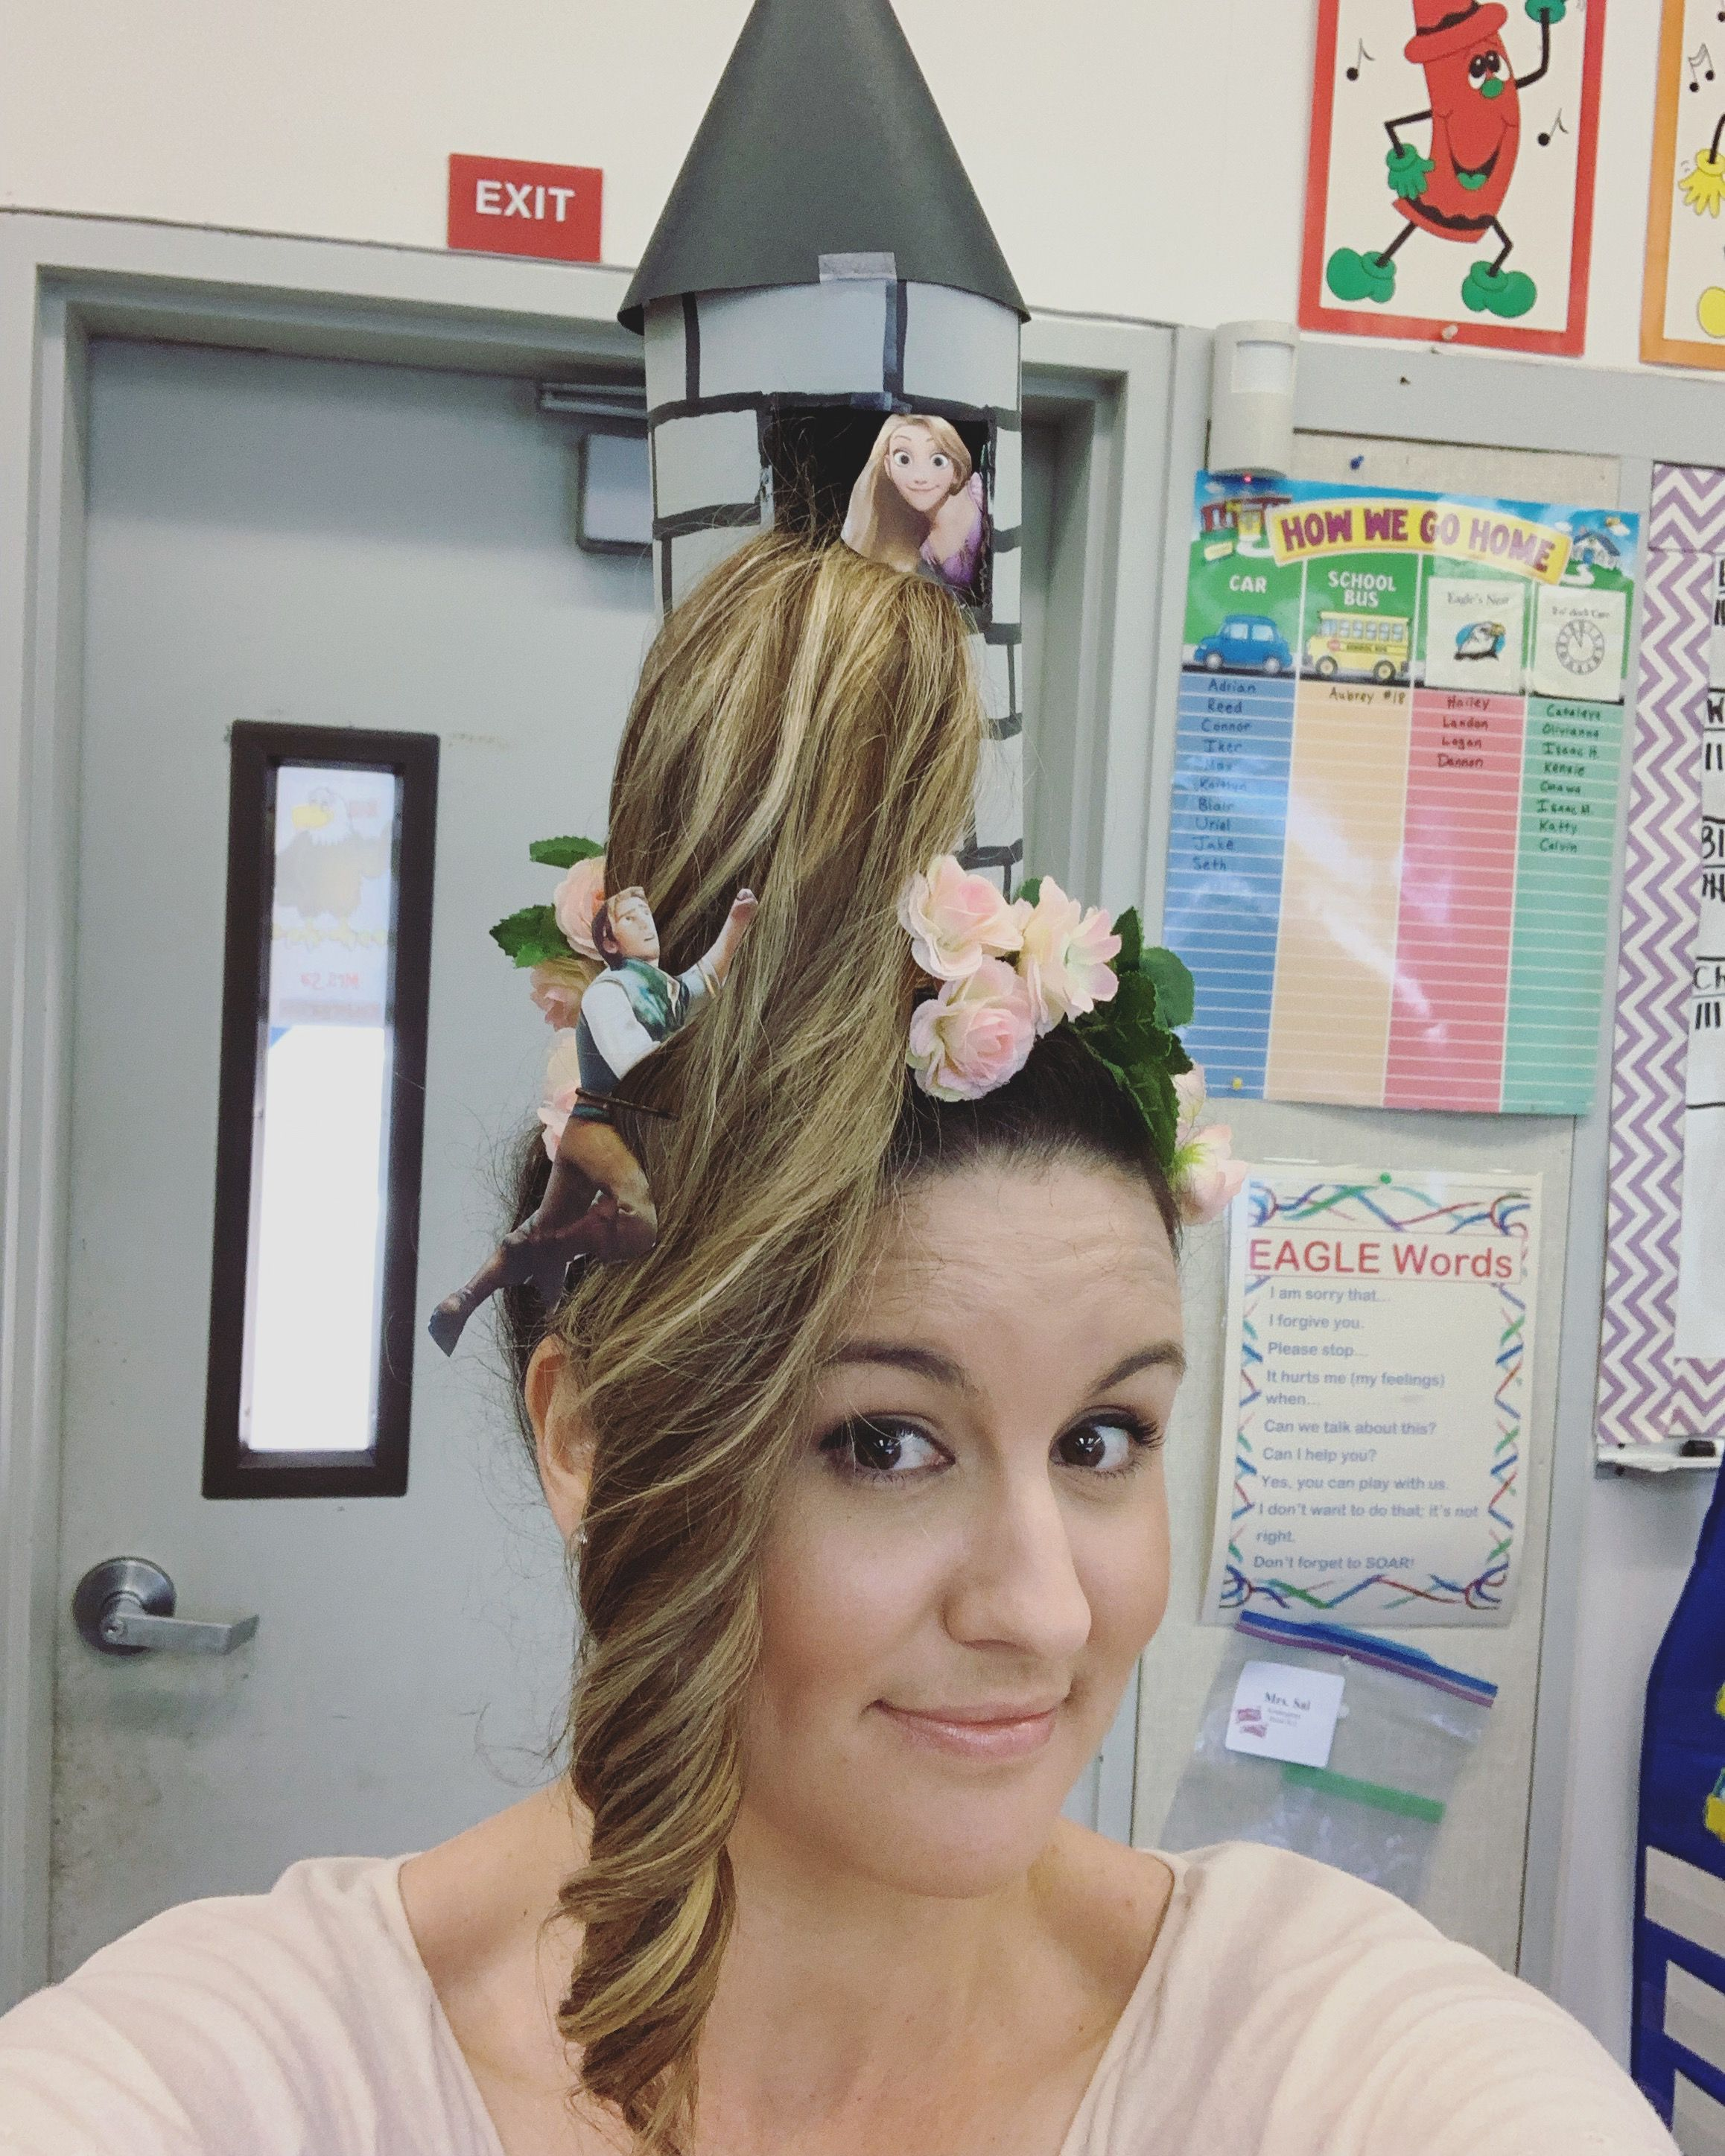 Crazy hair day! #crazyhairday Crazy hair day at school for a teacher. Rapunzel tower with Flynn climbing up. #crazyhairdayatschoolforgirlseasy